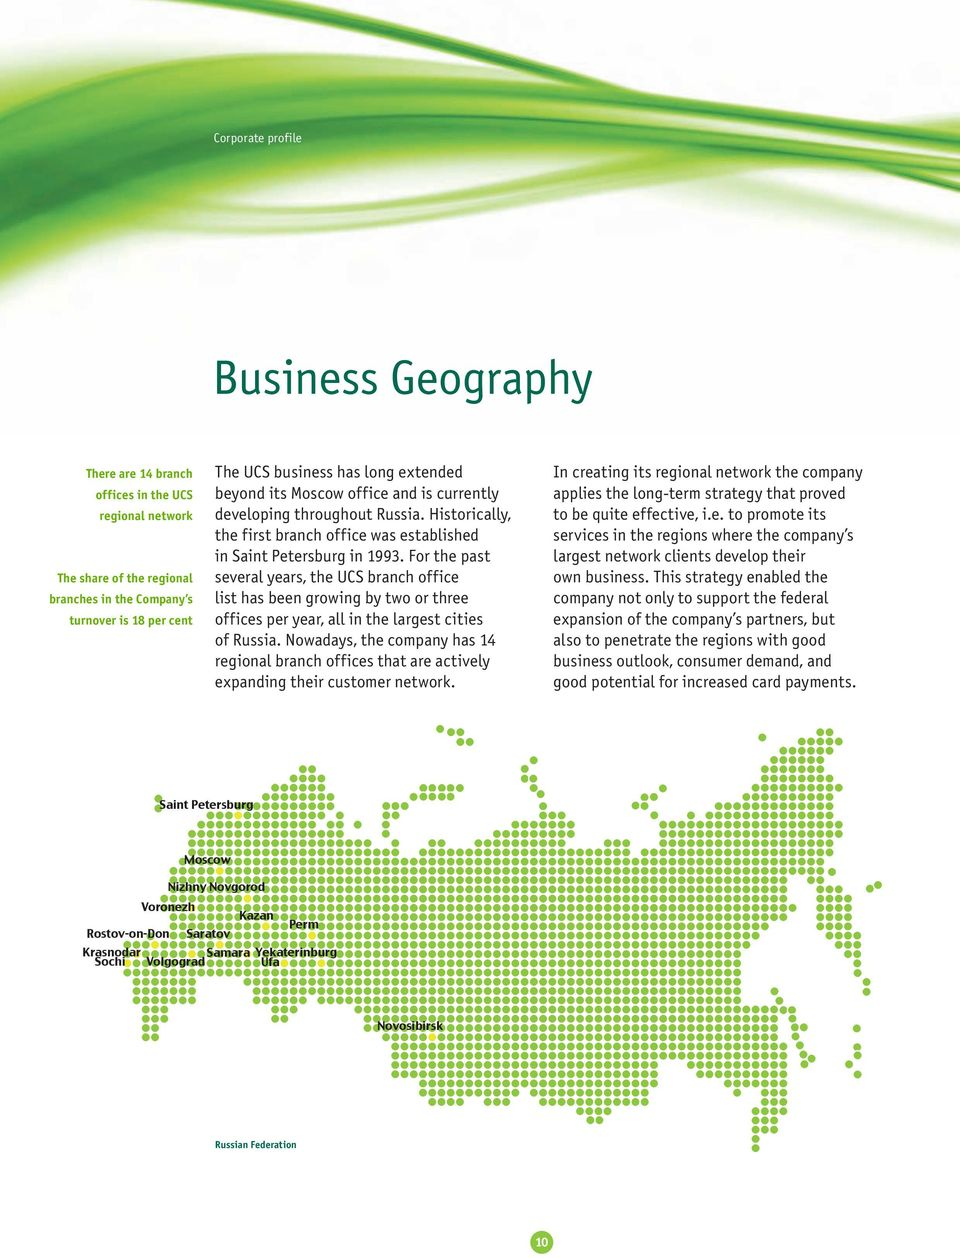 For the past several years, the UCS branch office list has been growing by two or three offices per year, all in the largest cities of Russia.